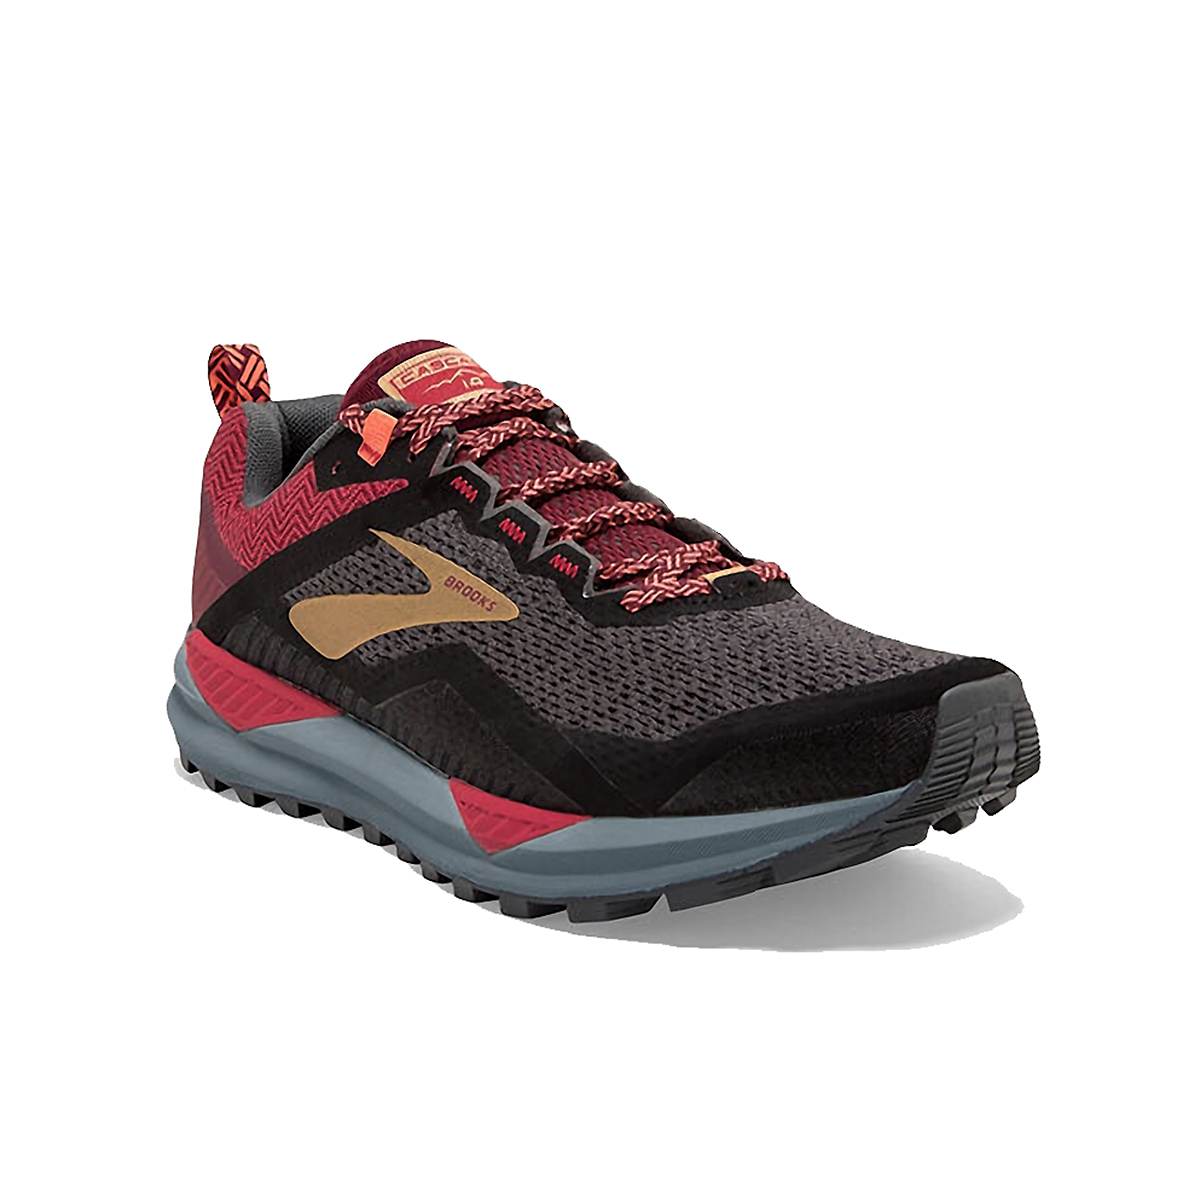 Women's Brooks Cascadia 14 Trail Running Shoe - Color: Black/Rumba Red - Size: 5 - Width: Regular, Black/Rumba Red, large, image 4